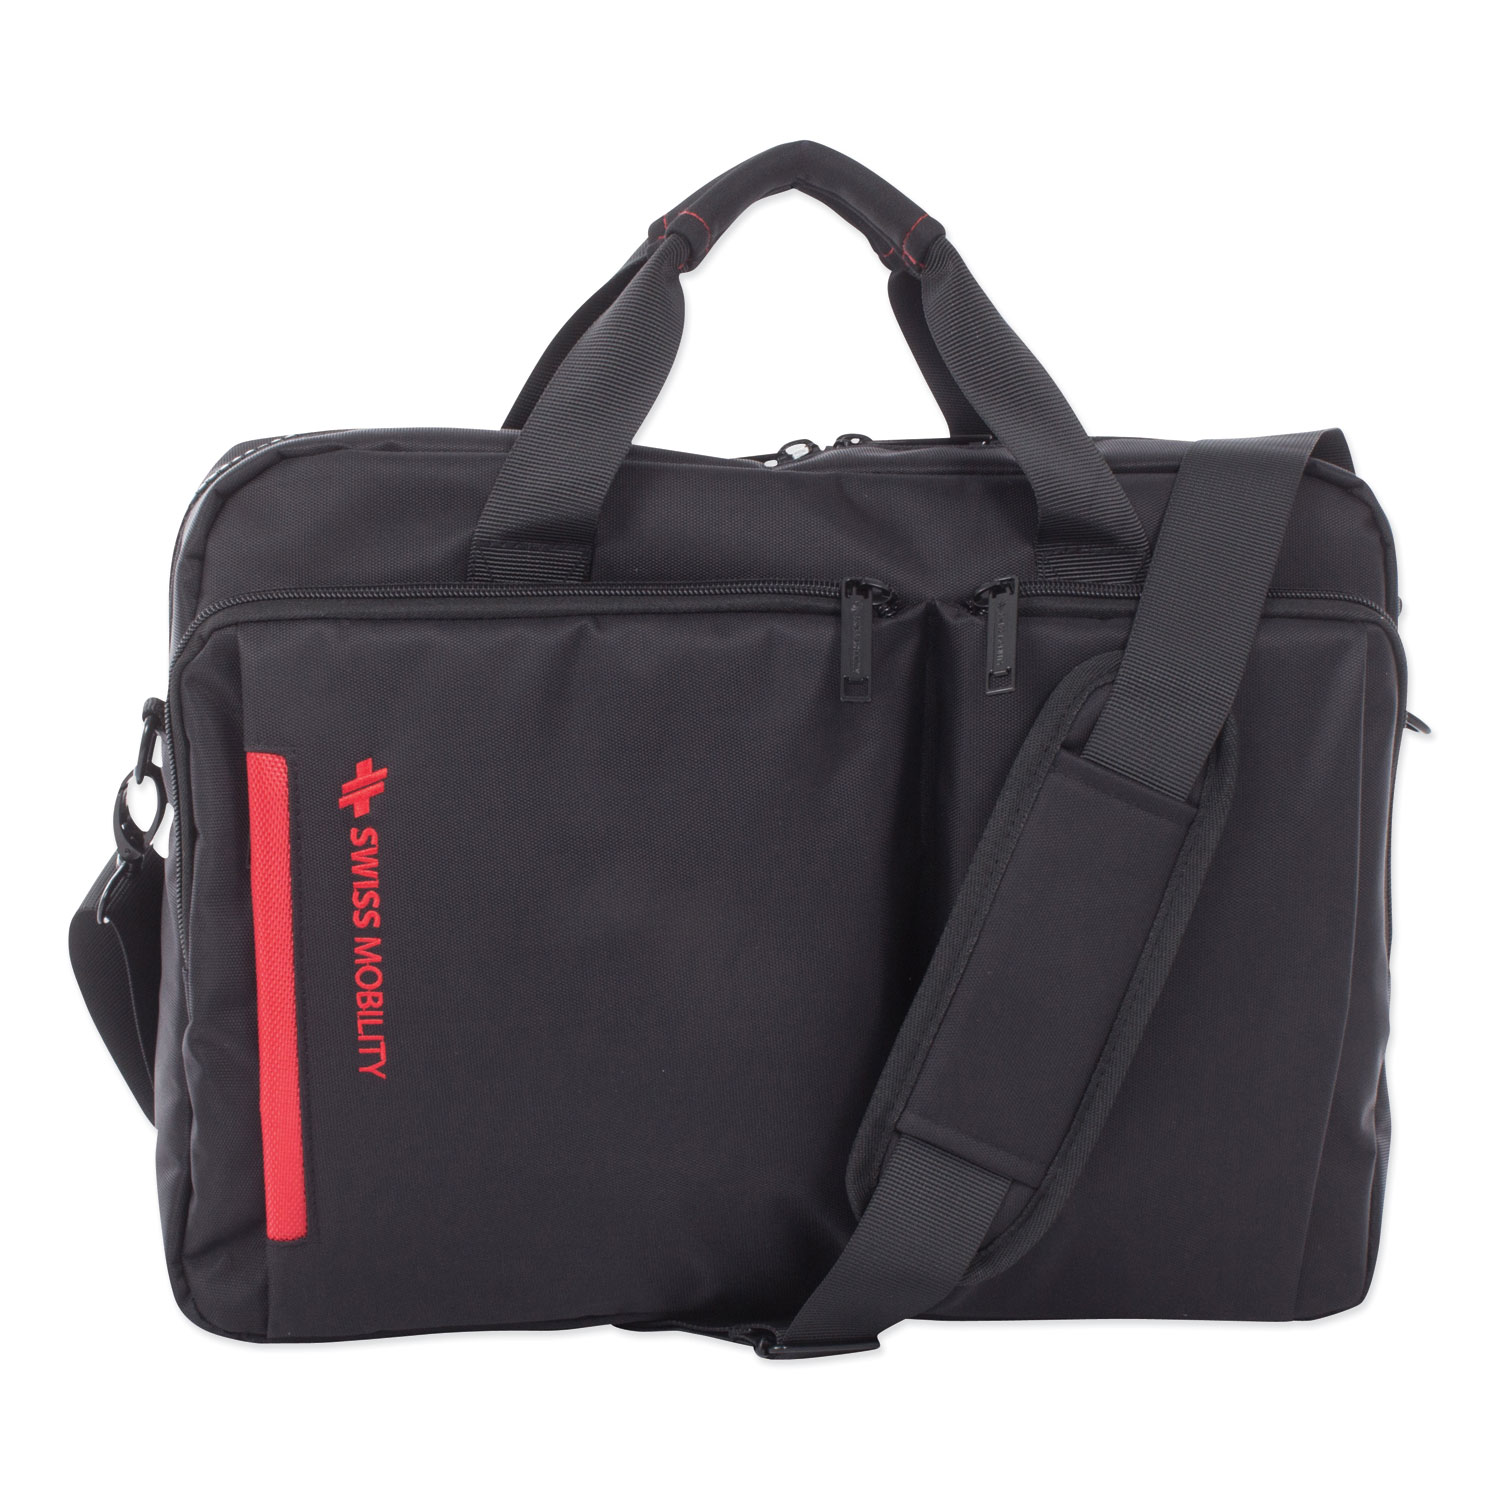 """Stride Executive Briefcase, Holds Laptops 15.6"""", 4"""" x 4"""" x 11.5"""", Black"""